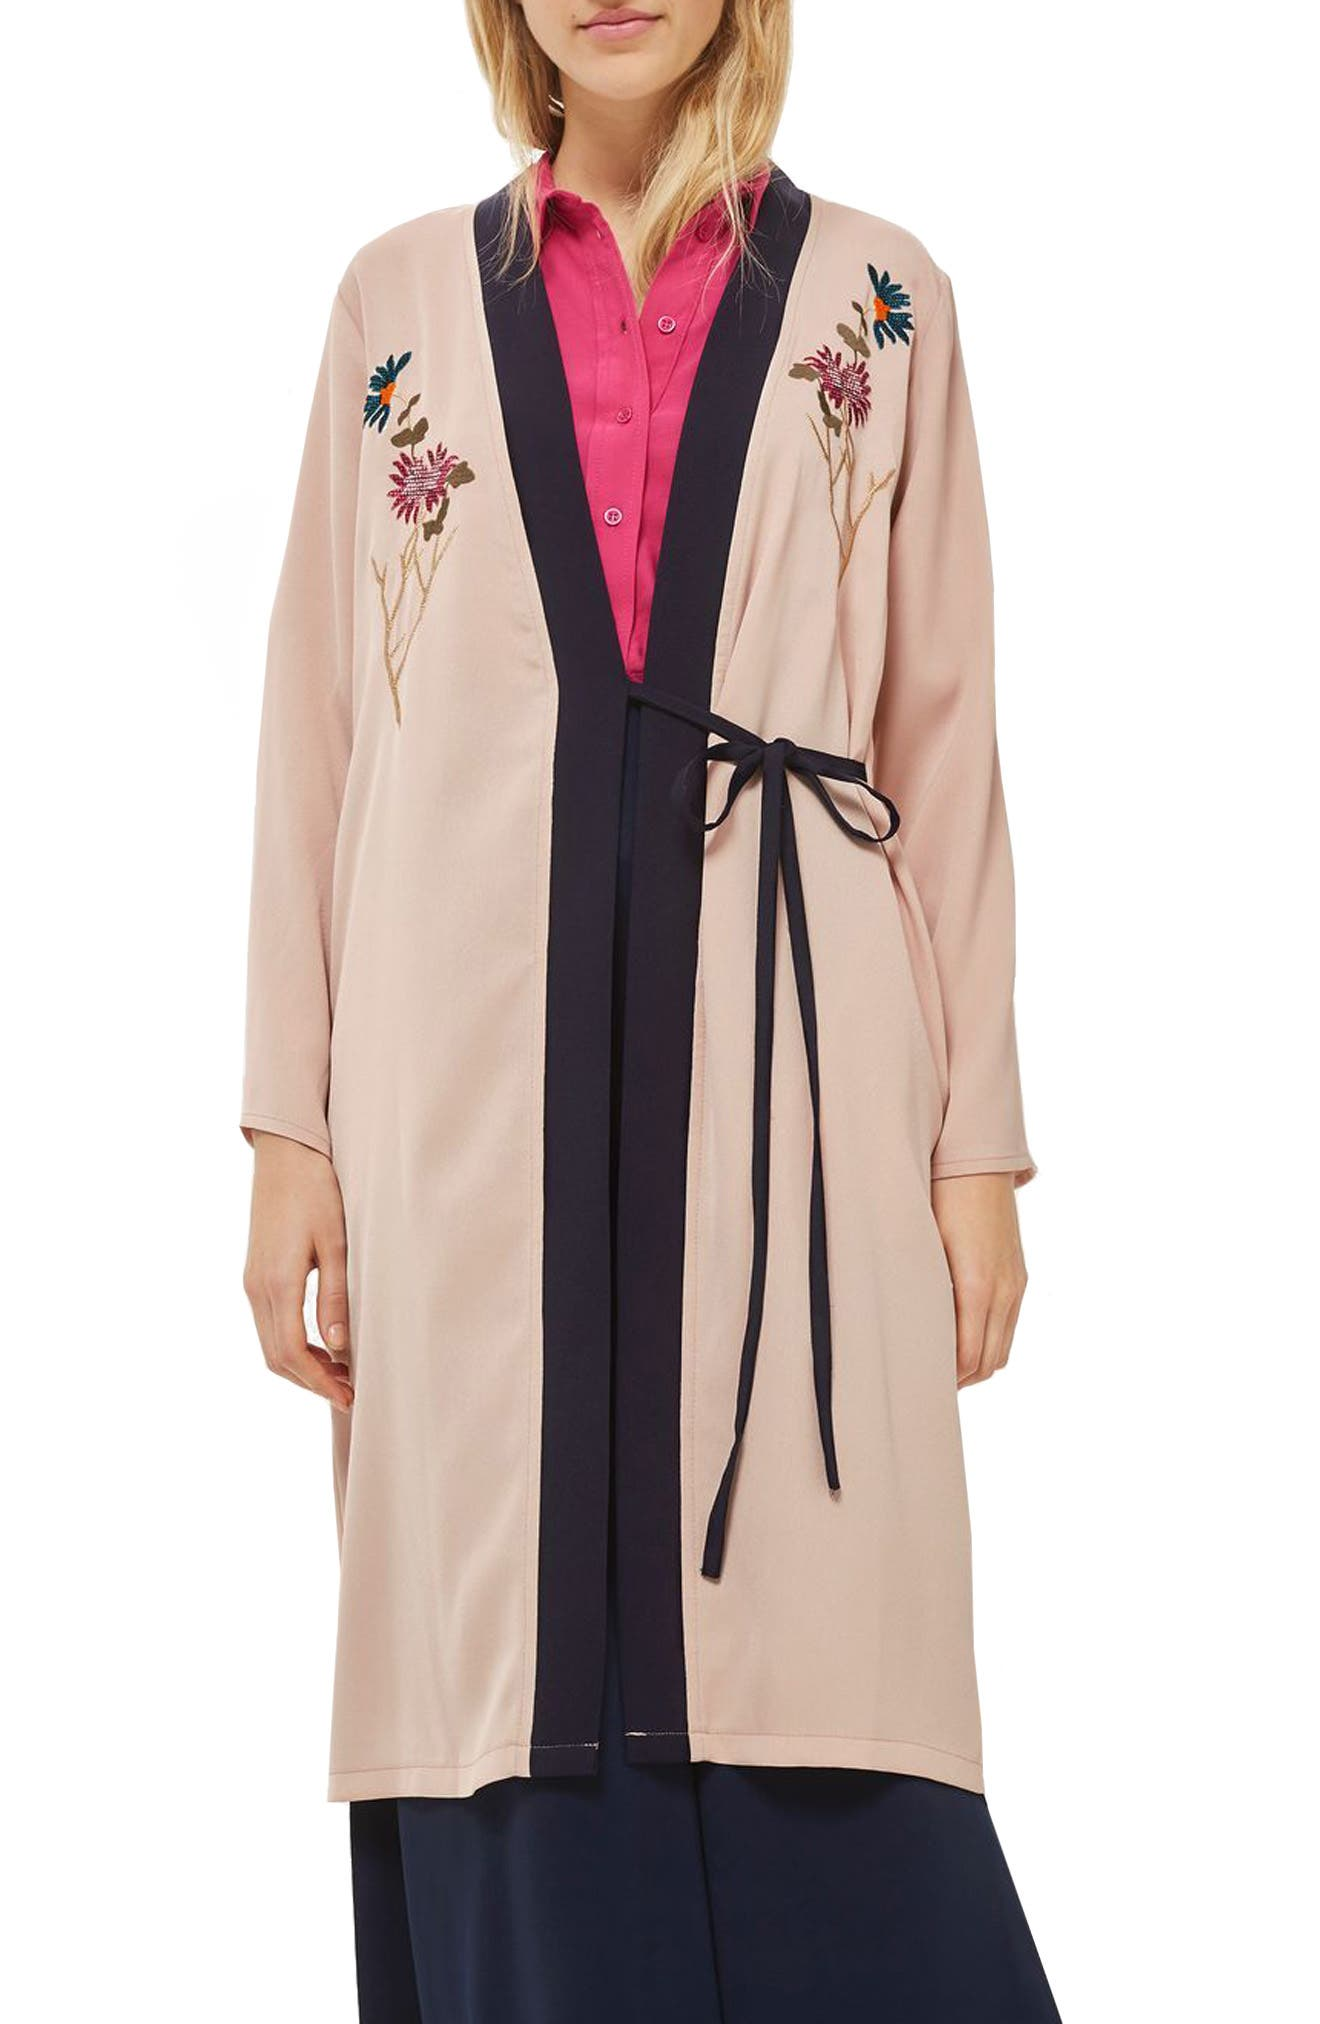 Tiger Embroidered Duster Coat,                             Main thumbnail 1, color,                             250